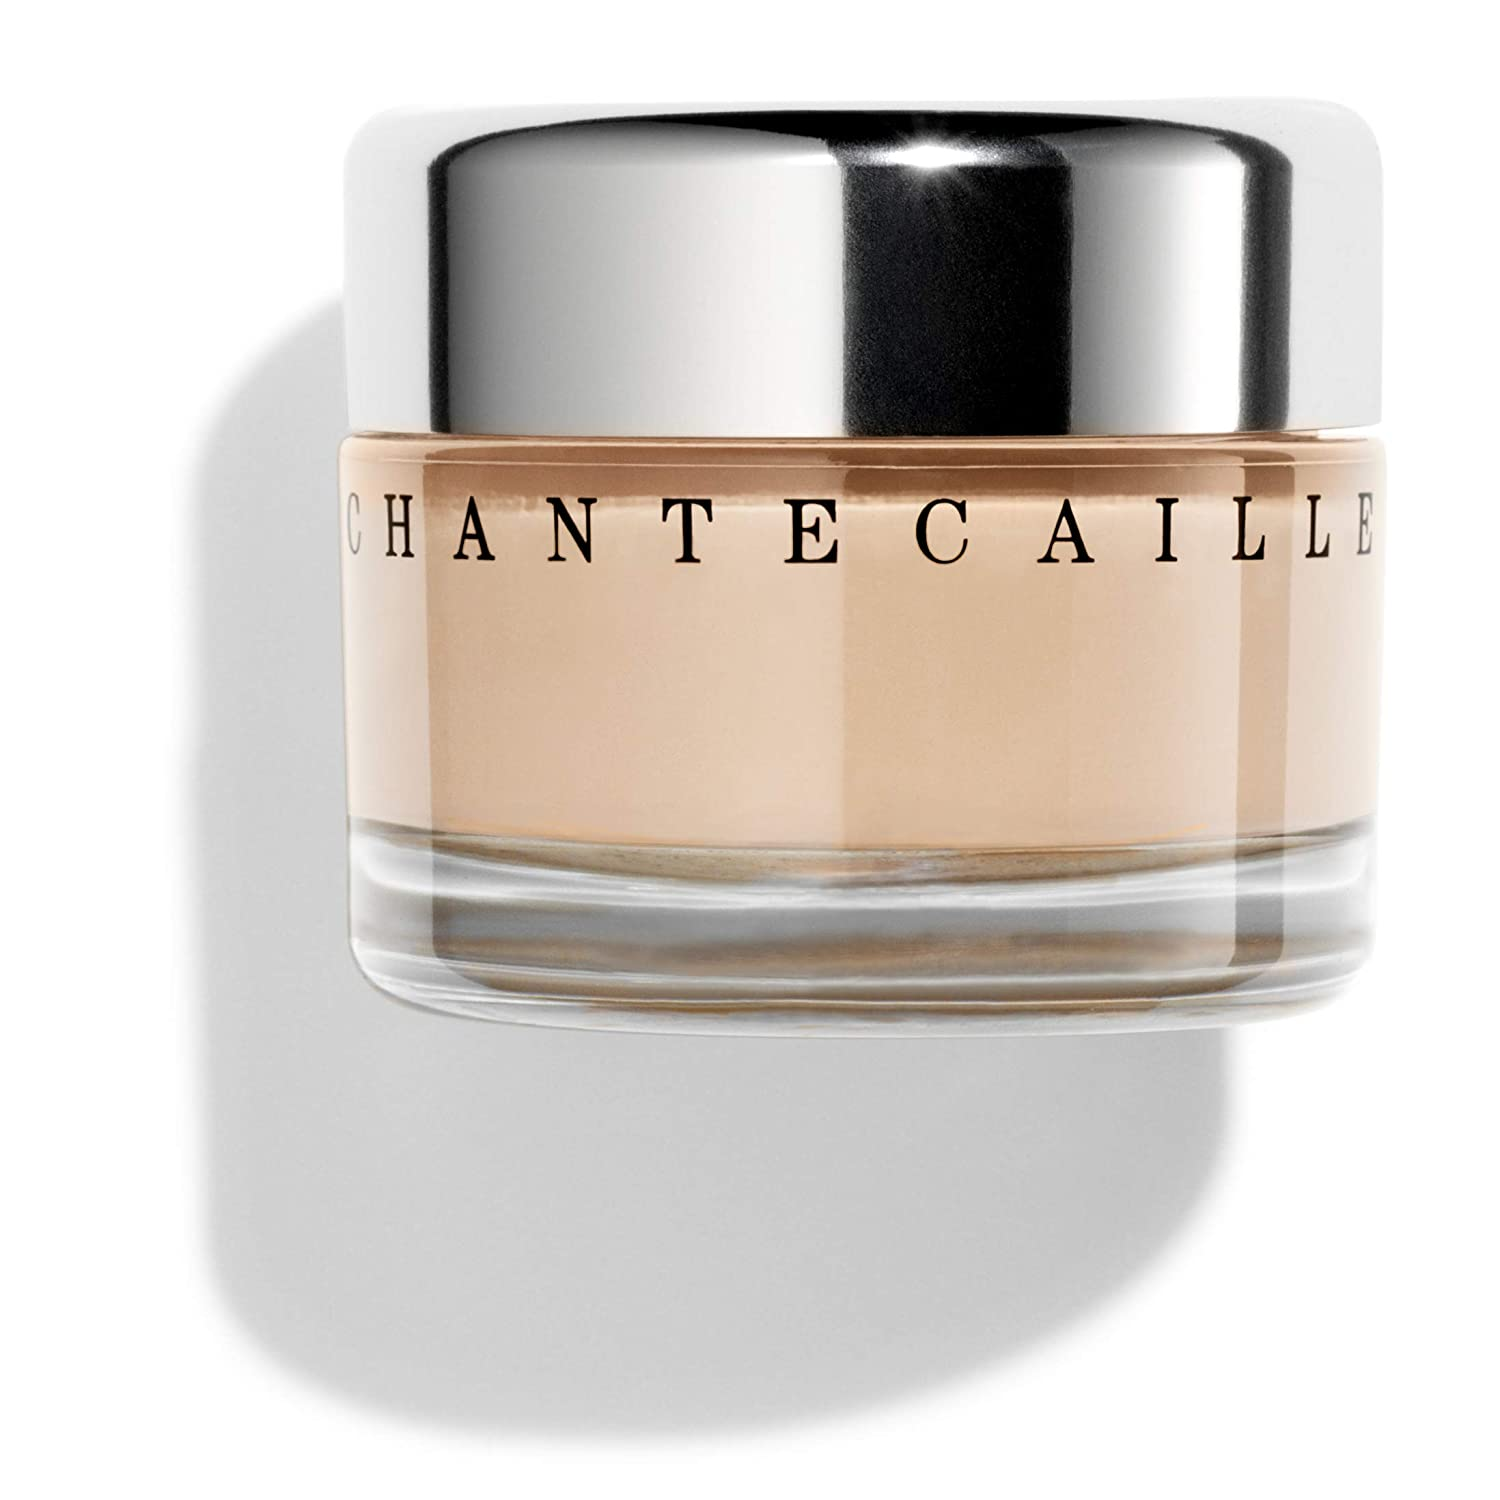 Future Skin Oil Free Gel Foundation by Chantecaille